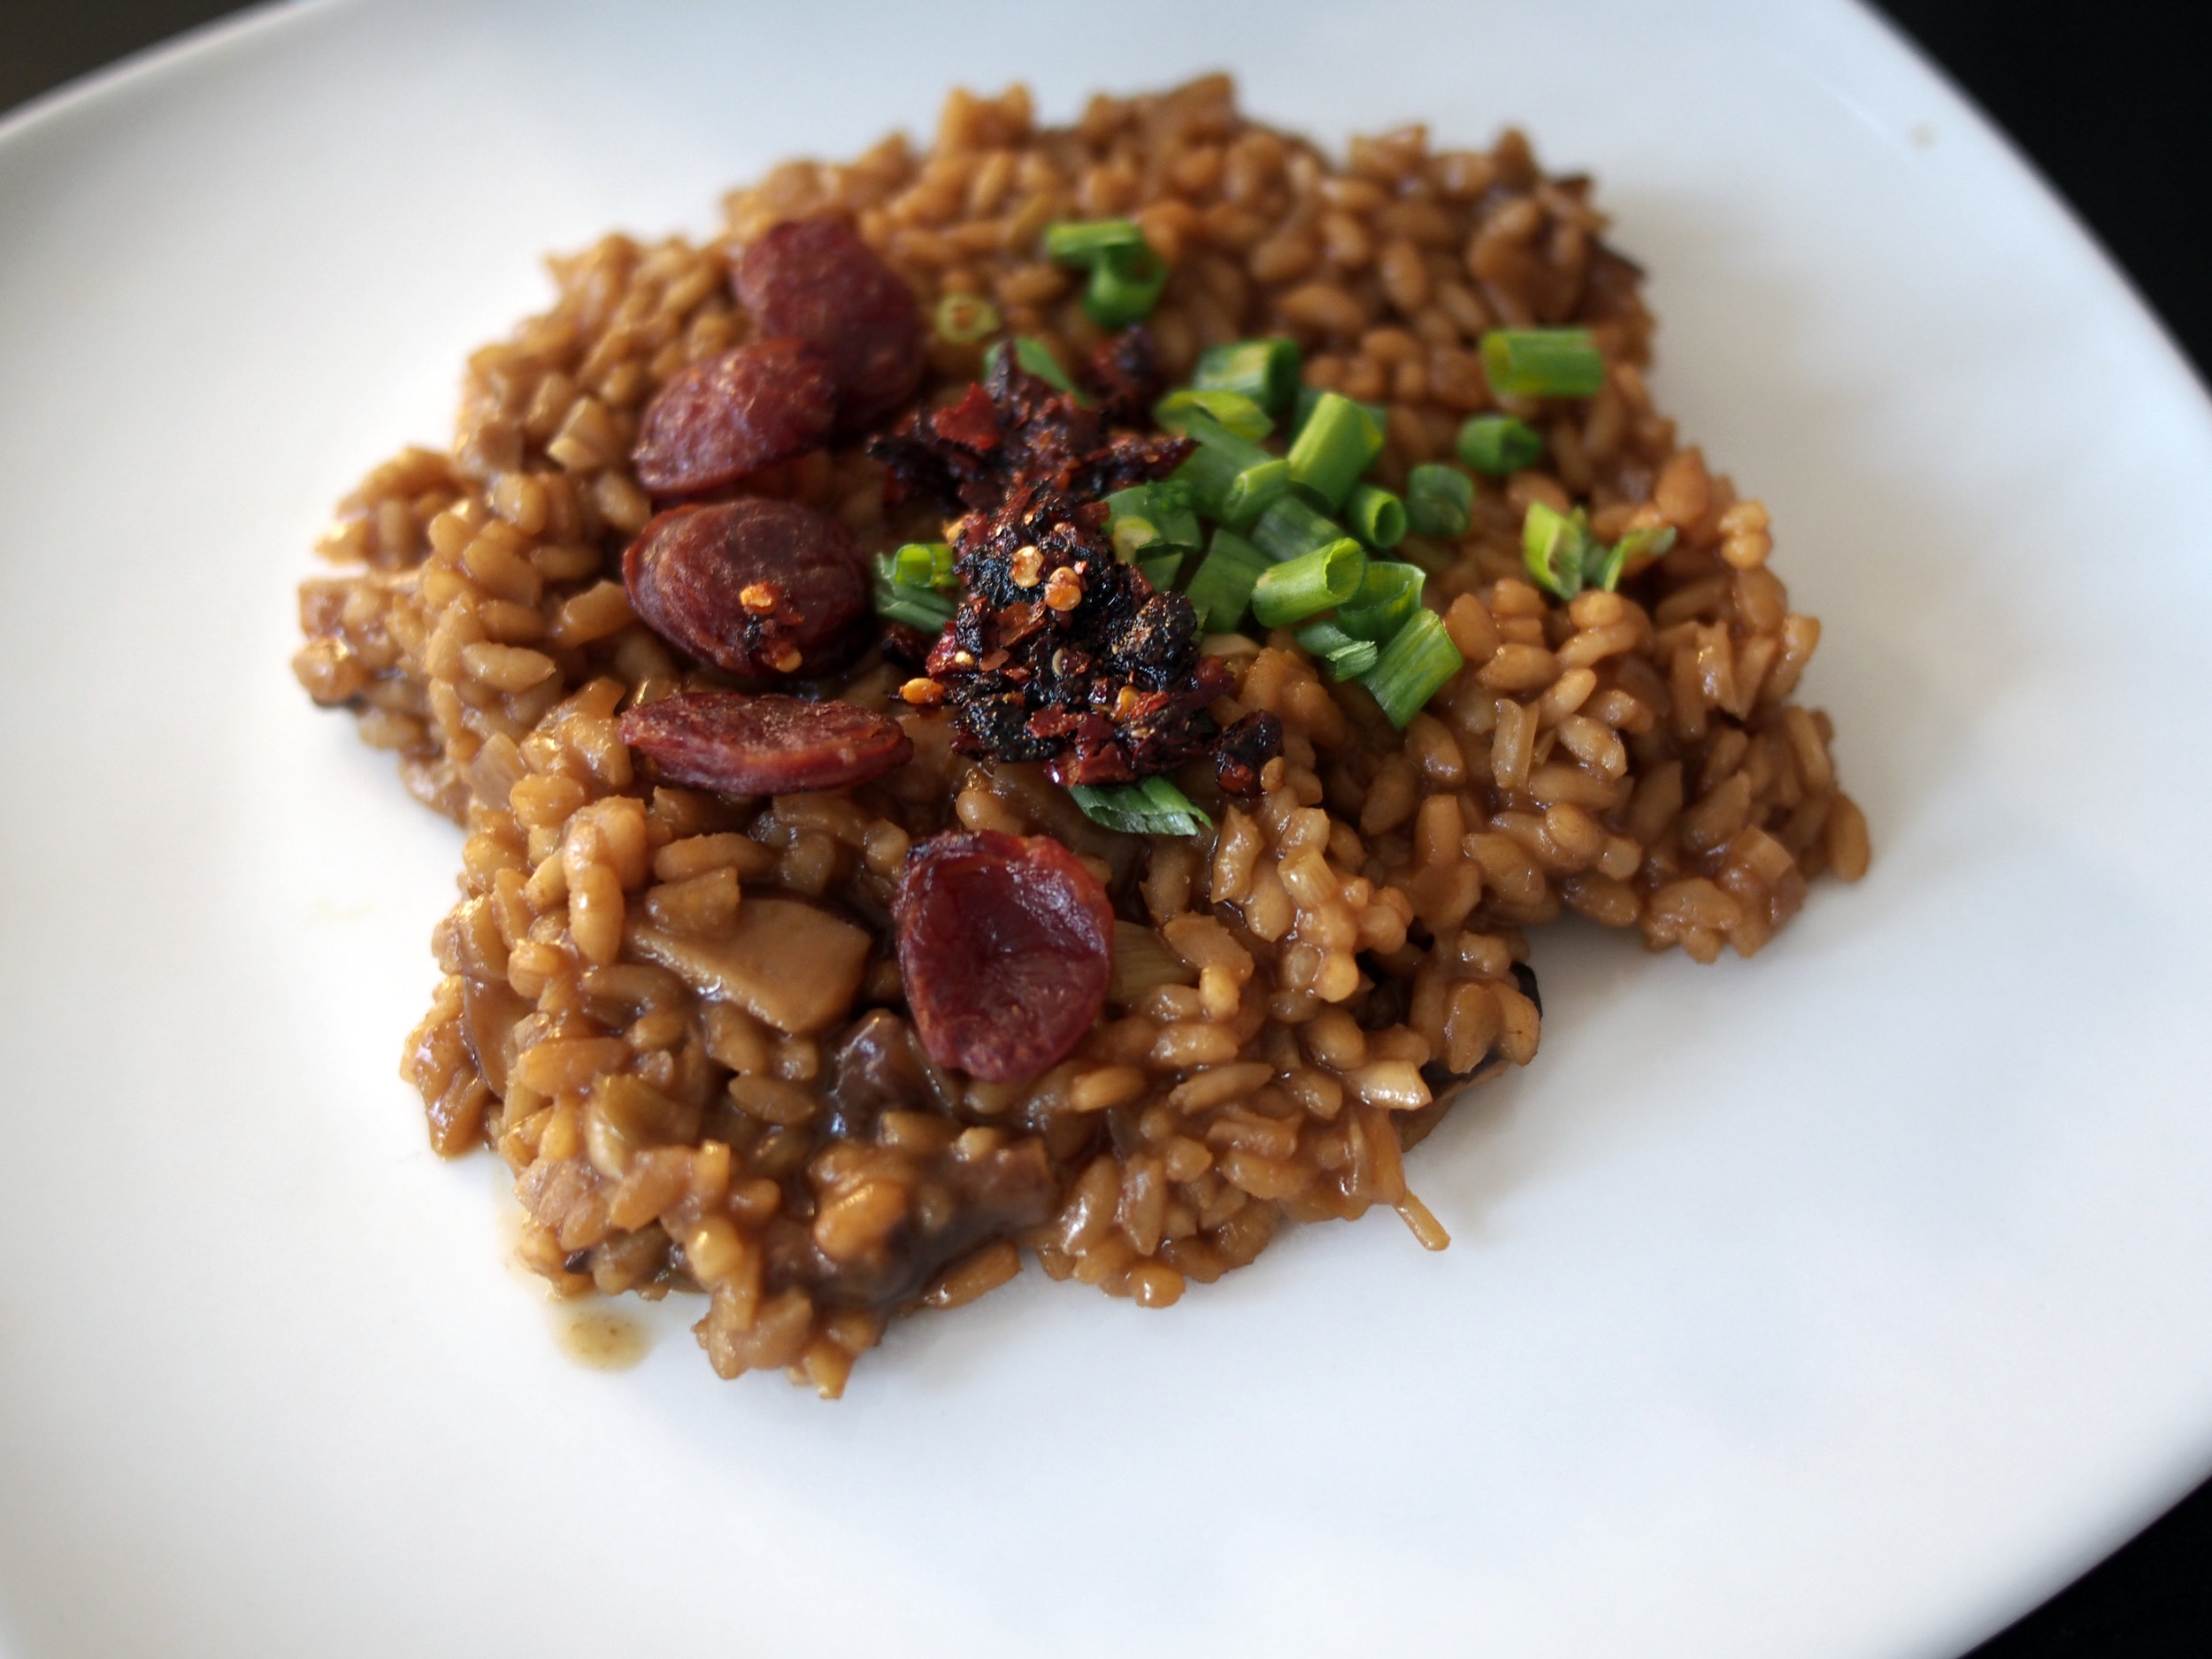 Risotto with soy sauce, shiitake mushrooms, lap cheong sausage, scallions, and chili crisp sauce